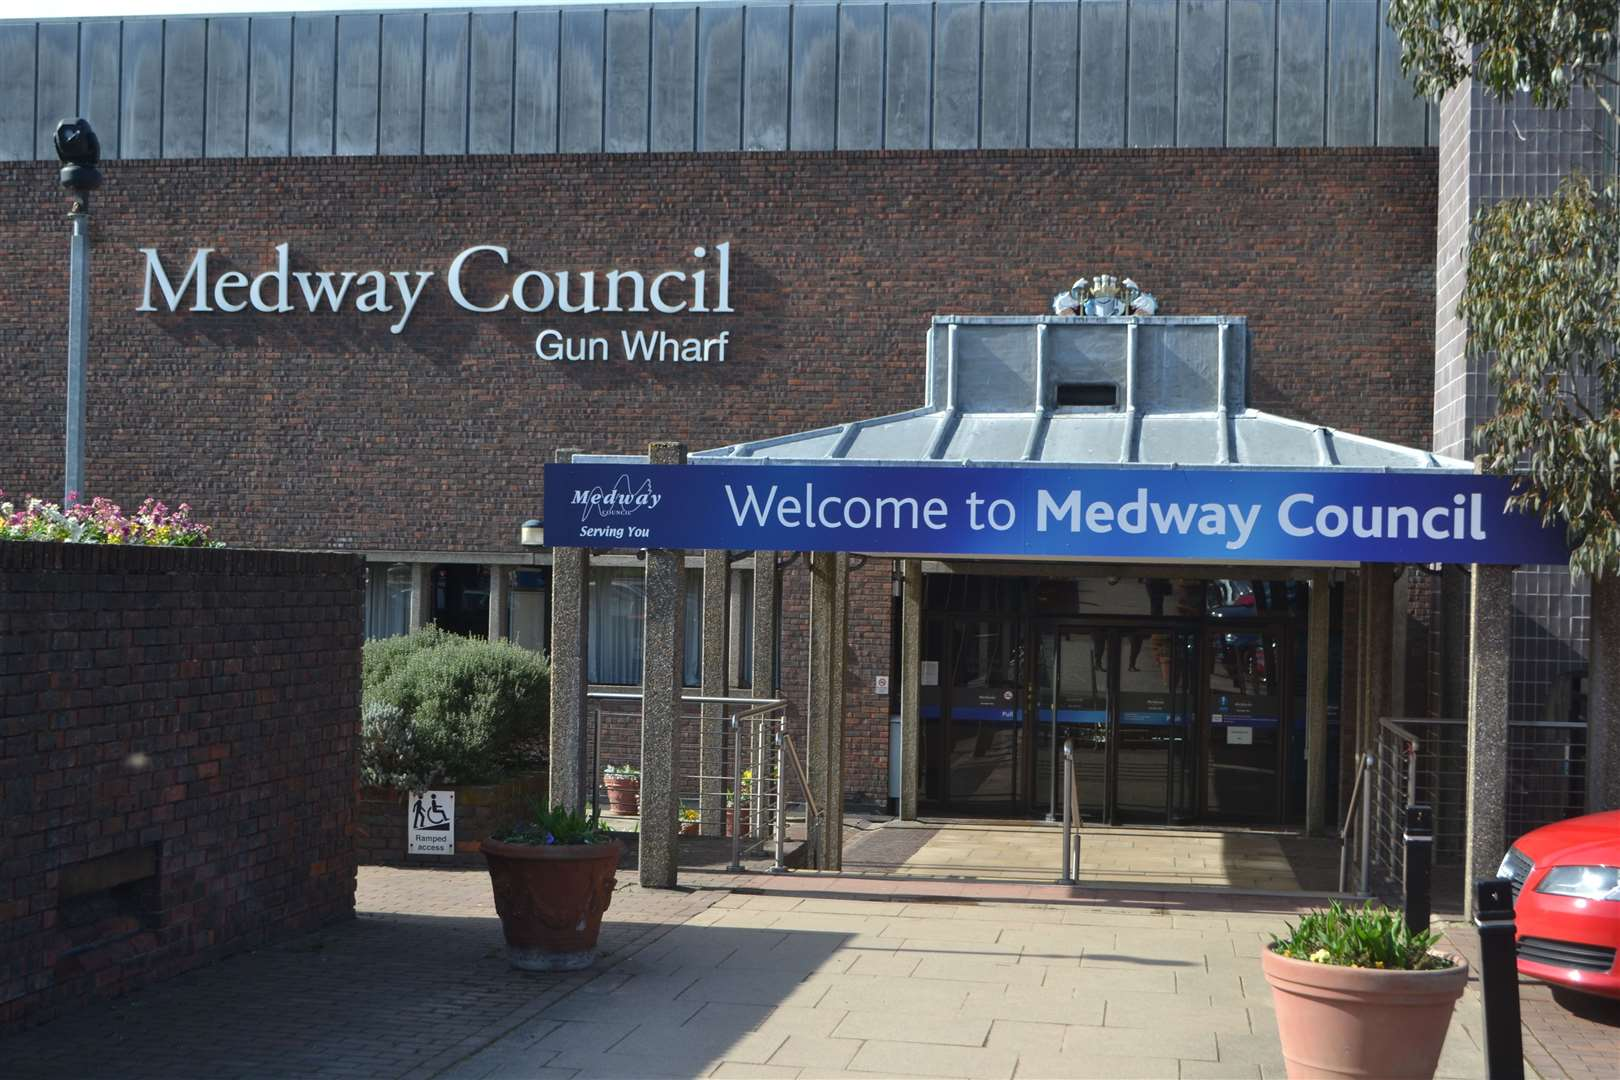 Medway Council offices